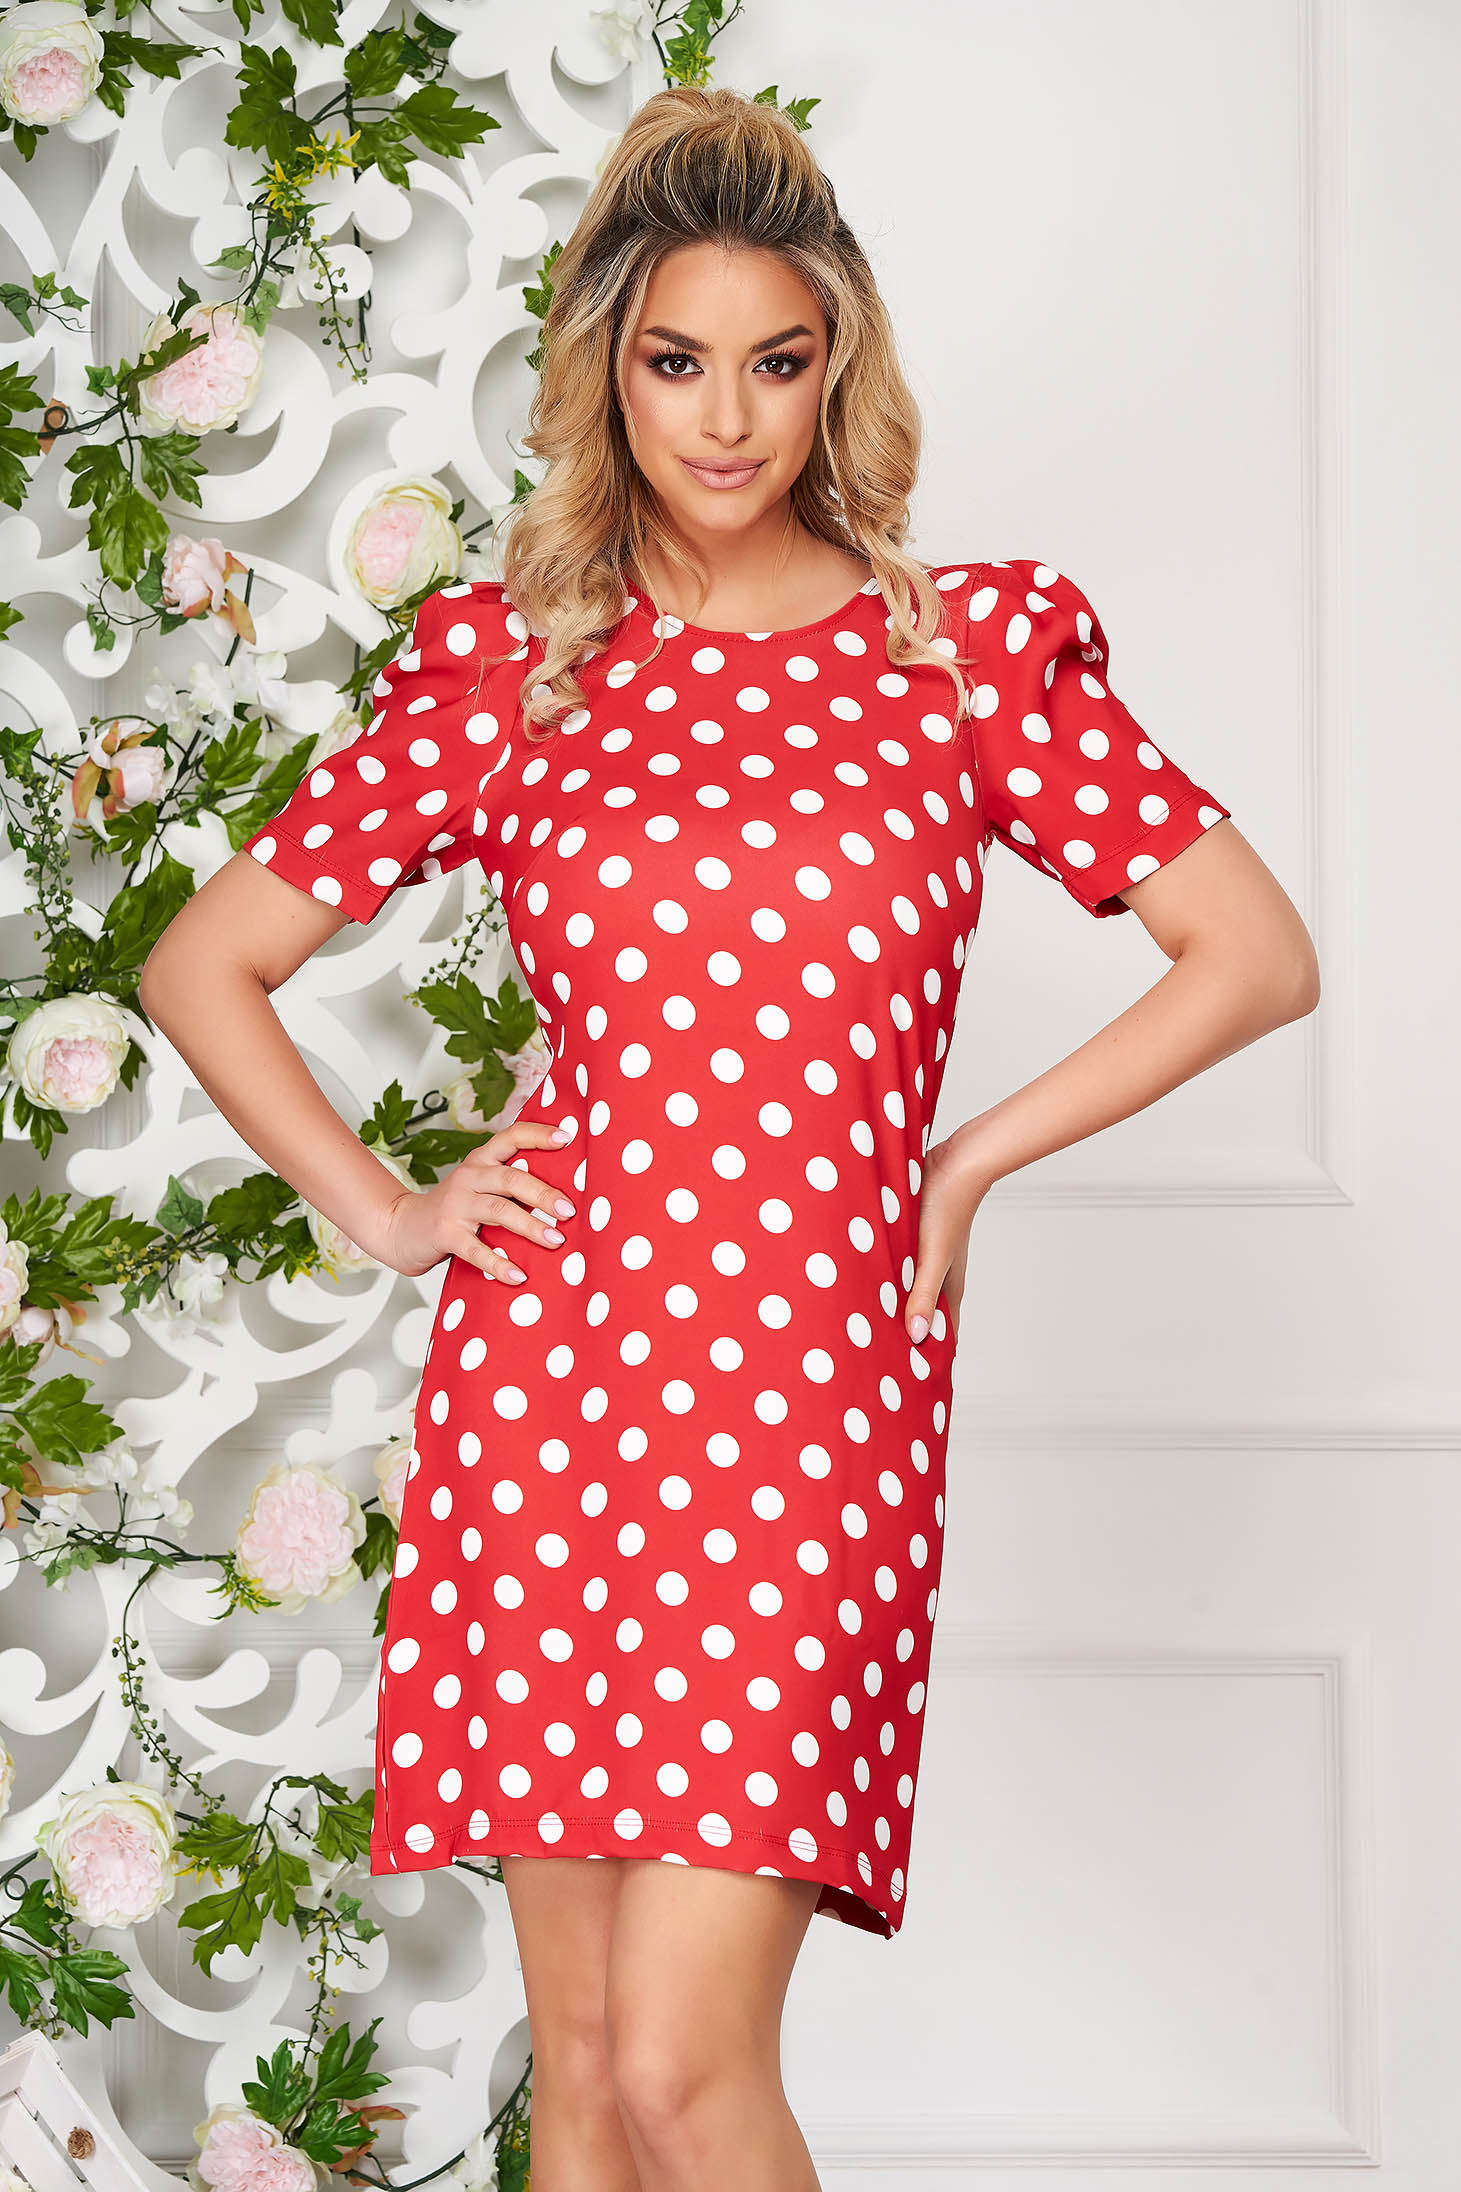 Red dress daily short cut a-line thin fabric high shoulders dots print